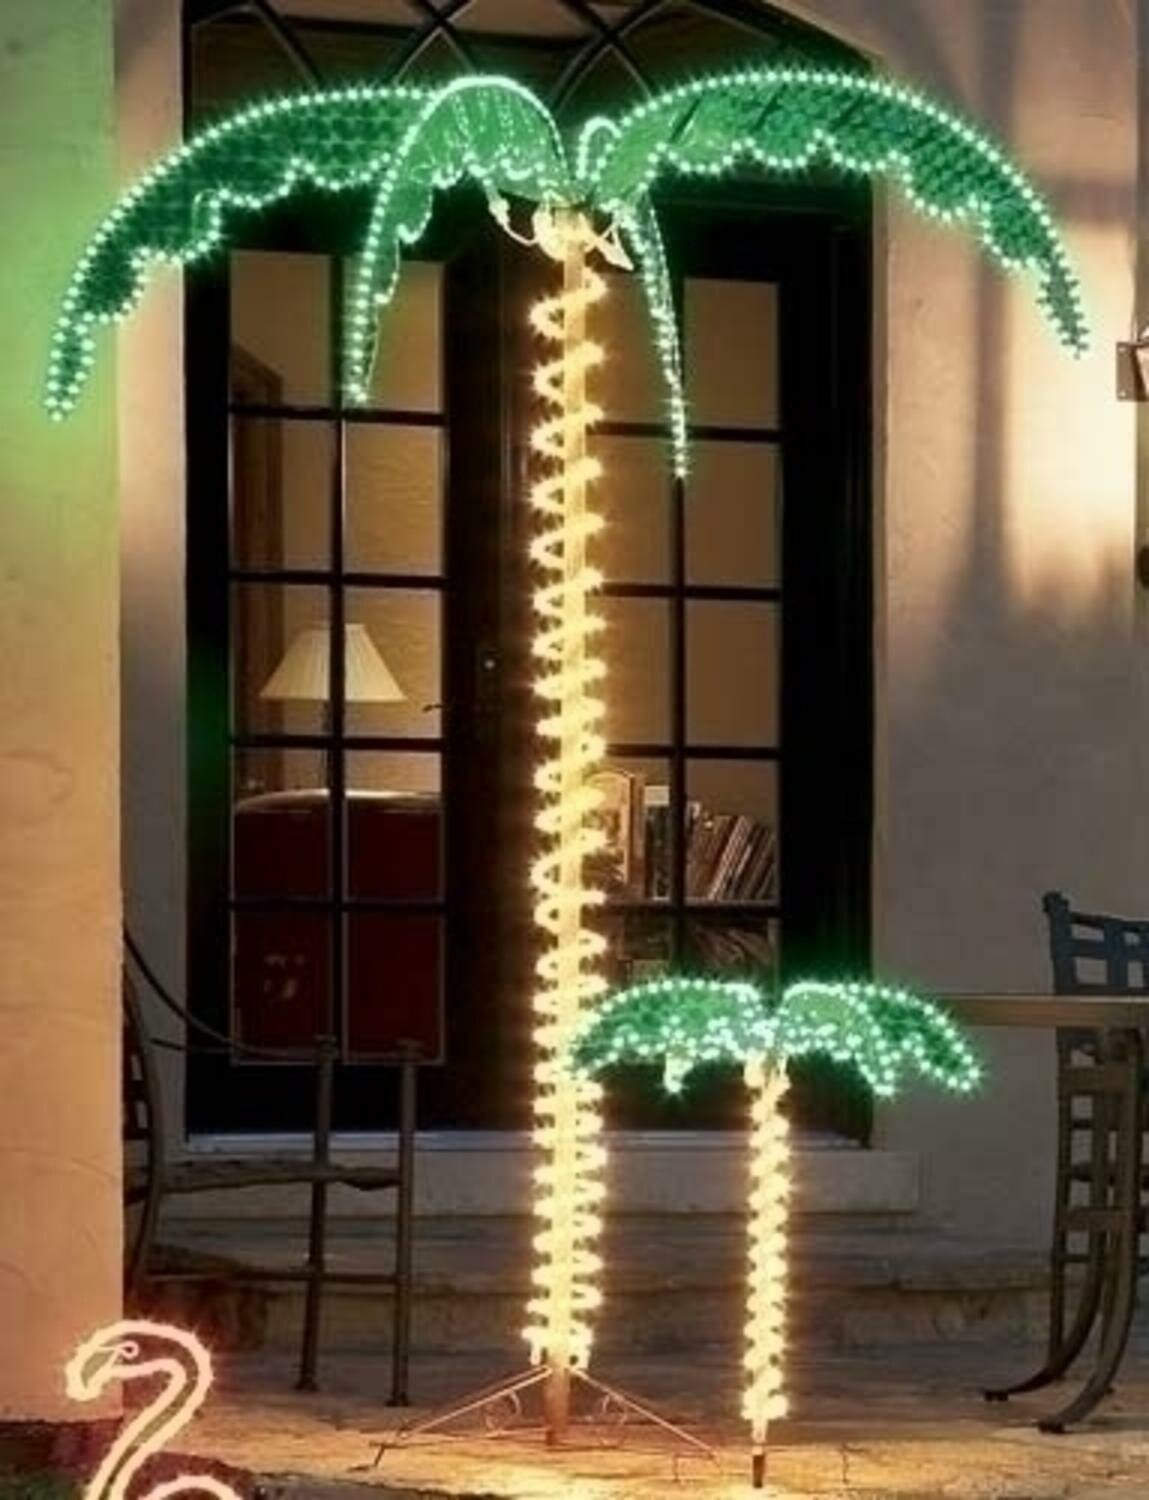 Northlight Tropical Lighted Holographic Rope Light Outdoor Palm Tree | Wayfair & Northlight Tropical Lighted Holographic Rope Light Outdoor Palm Tree ...